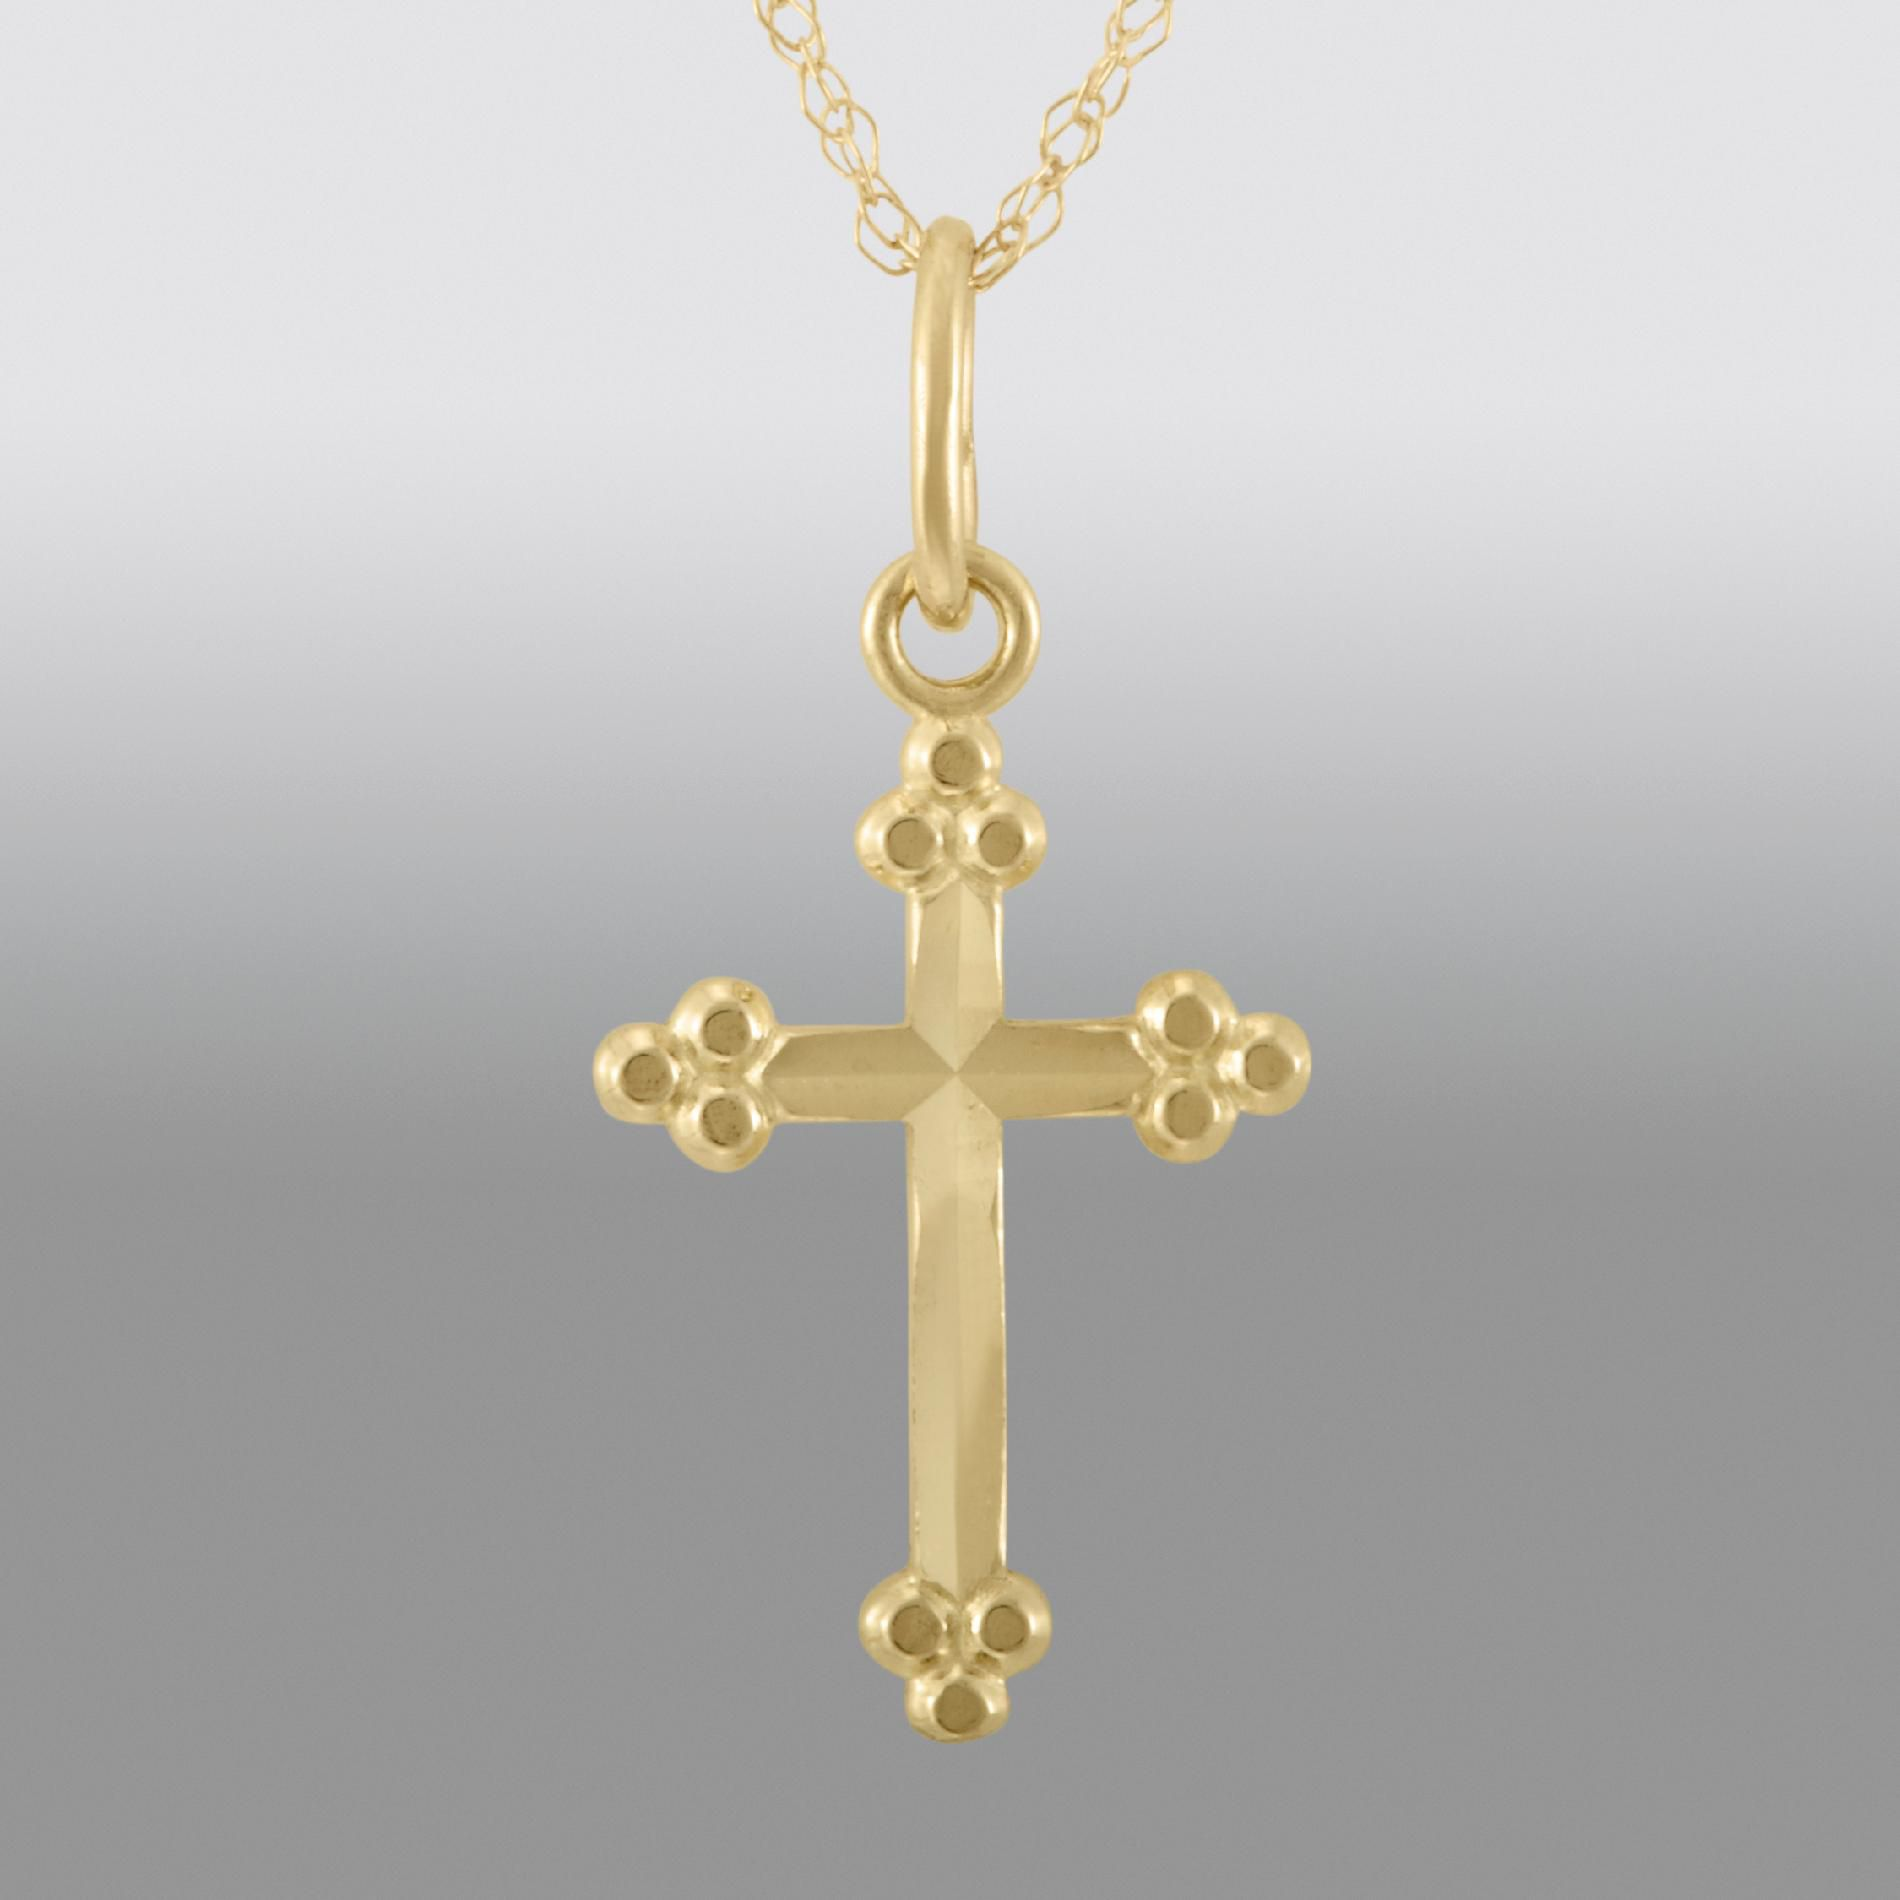 Childs Bead Edge Cross Pendant. 14K